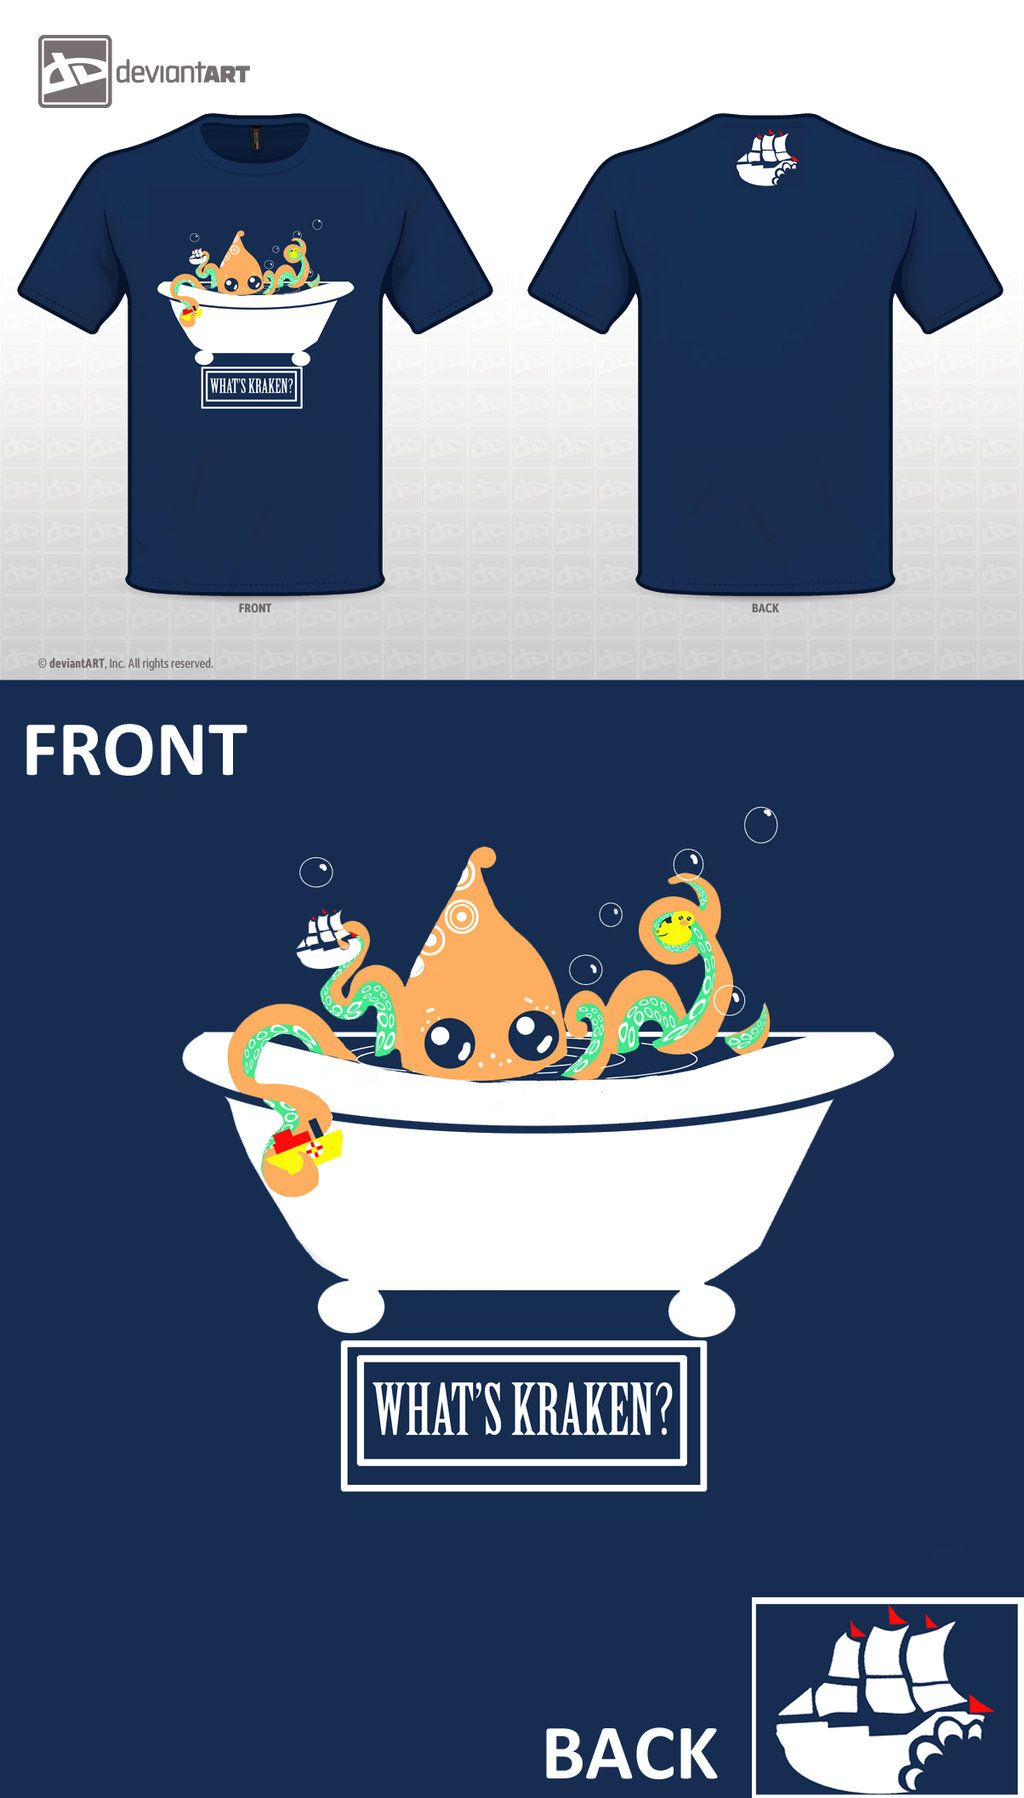 LEASE VOTE FOR MY T_SHIRT TODAY!!! It means work for me! Please share if you can too! Thank you! <3 WHAT'S KRAKEN? by sophersgreen.deviantart.com